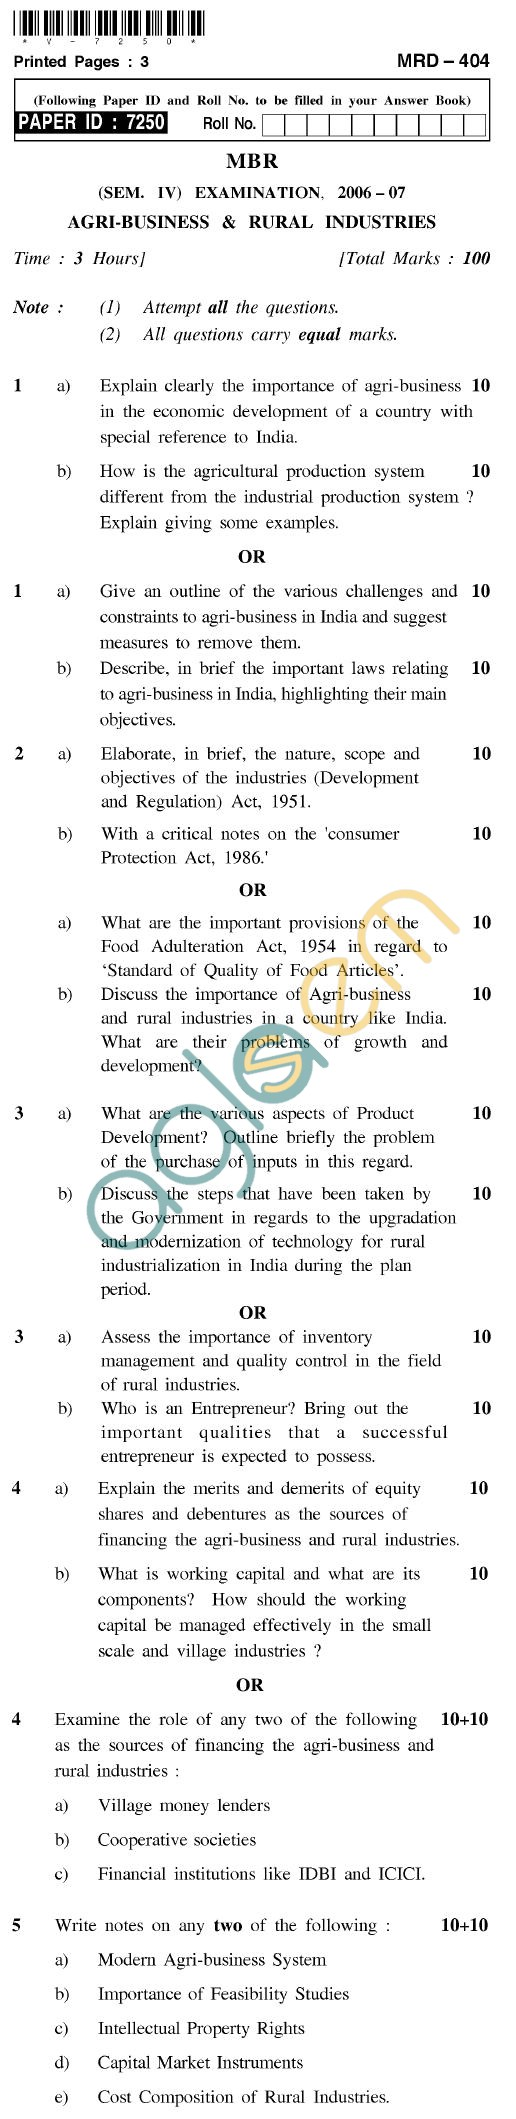 UPTU MBR Question Papers - MRD-404-Agri-Business & Rural Industries